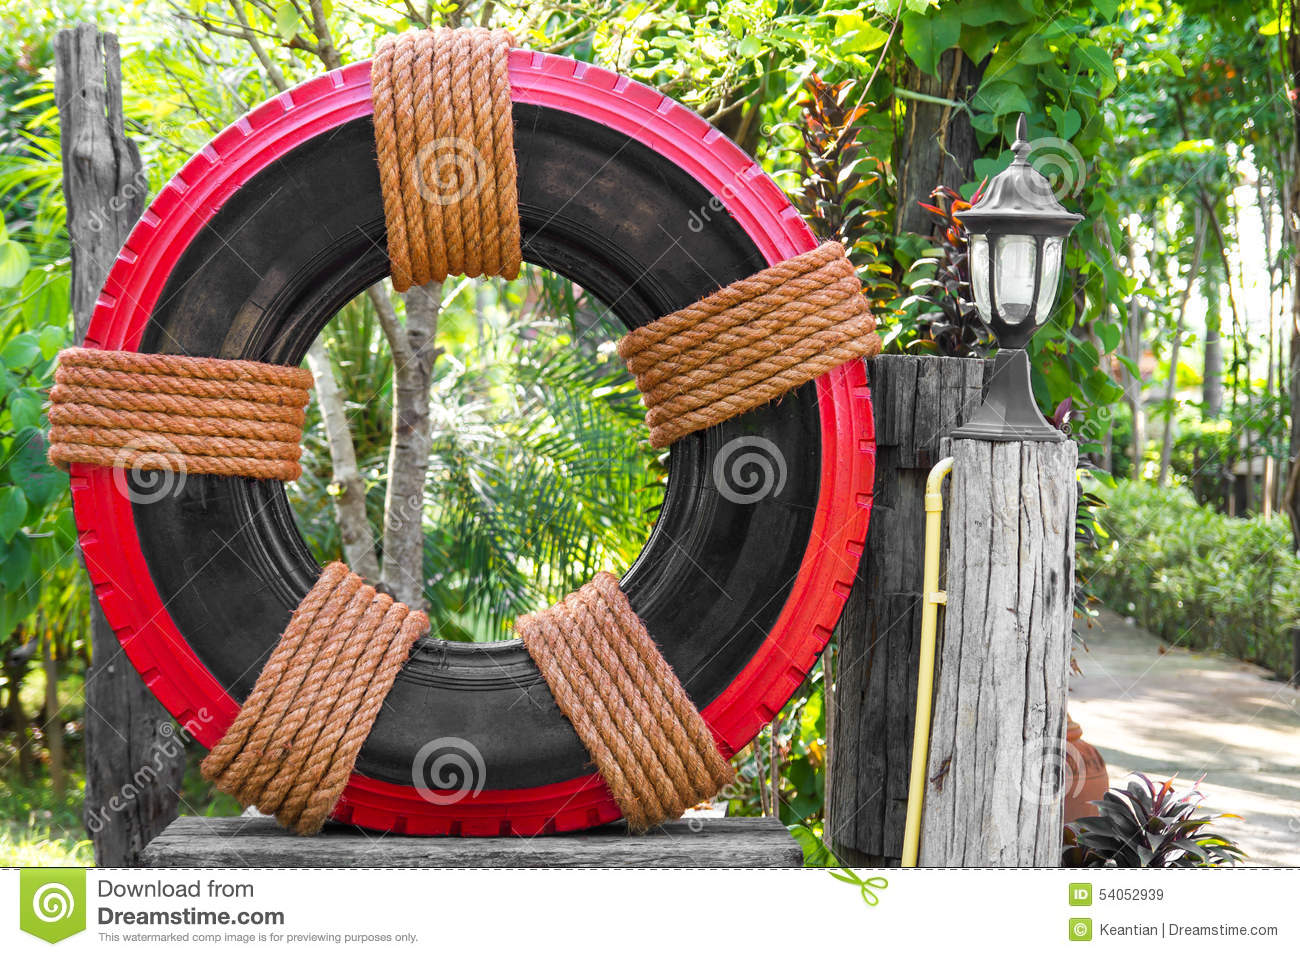 tire garden decor stock photo - image: 54052939